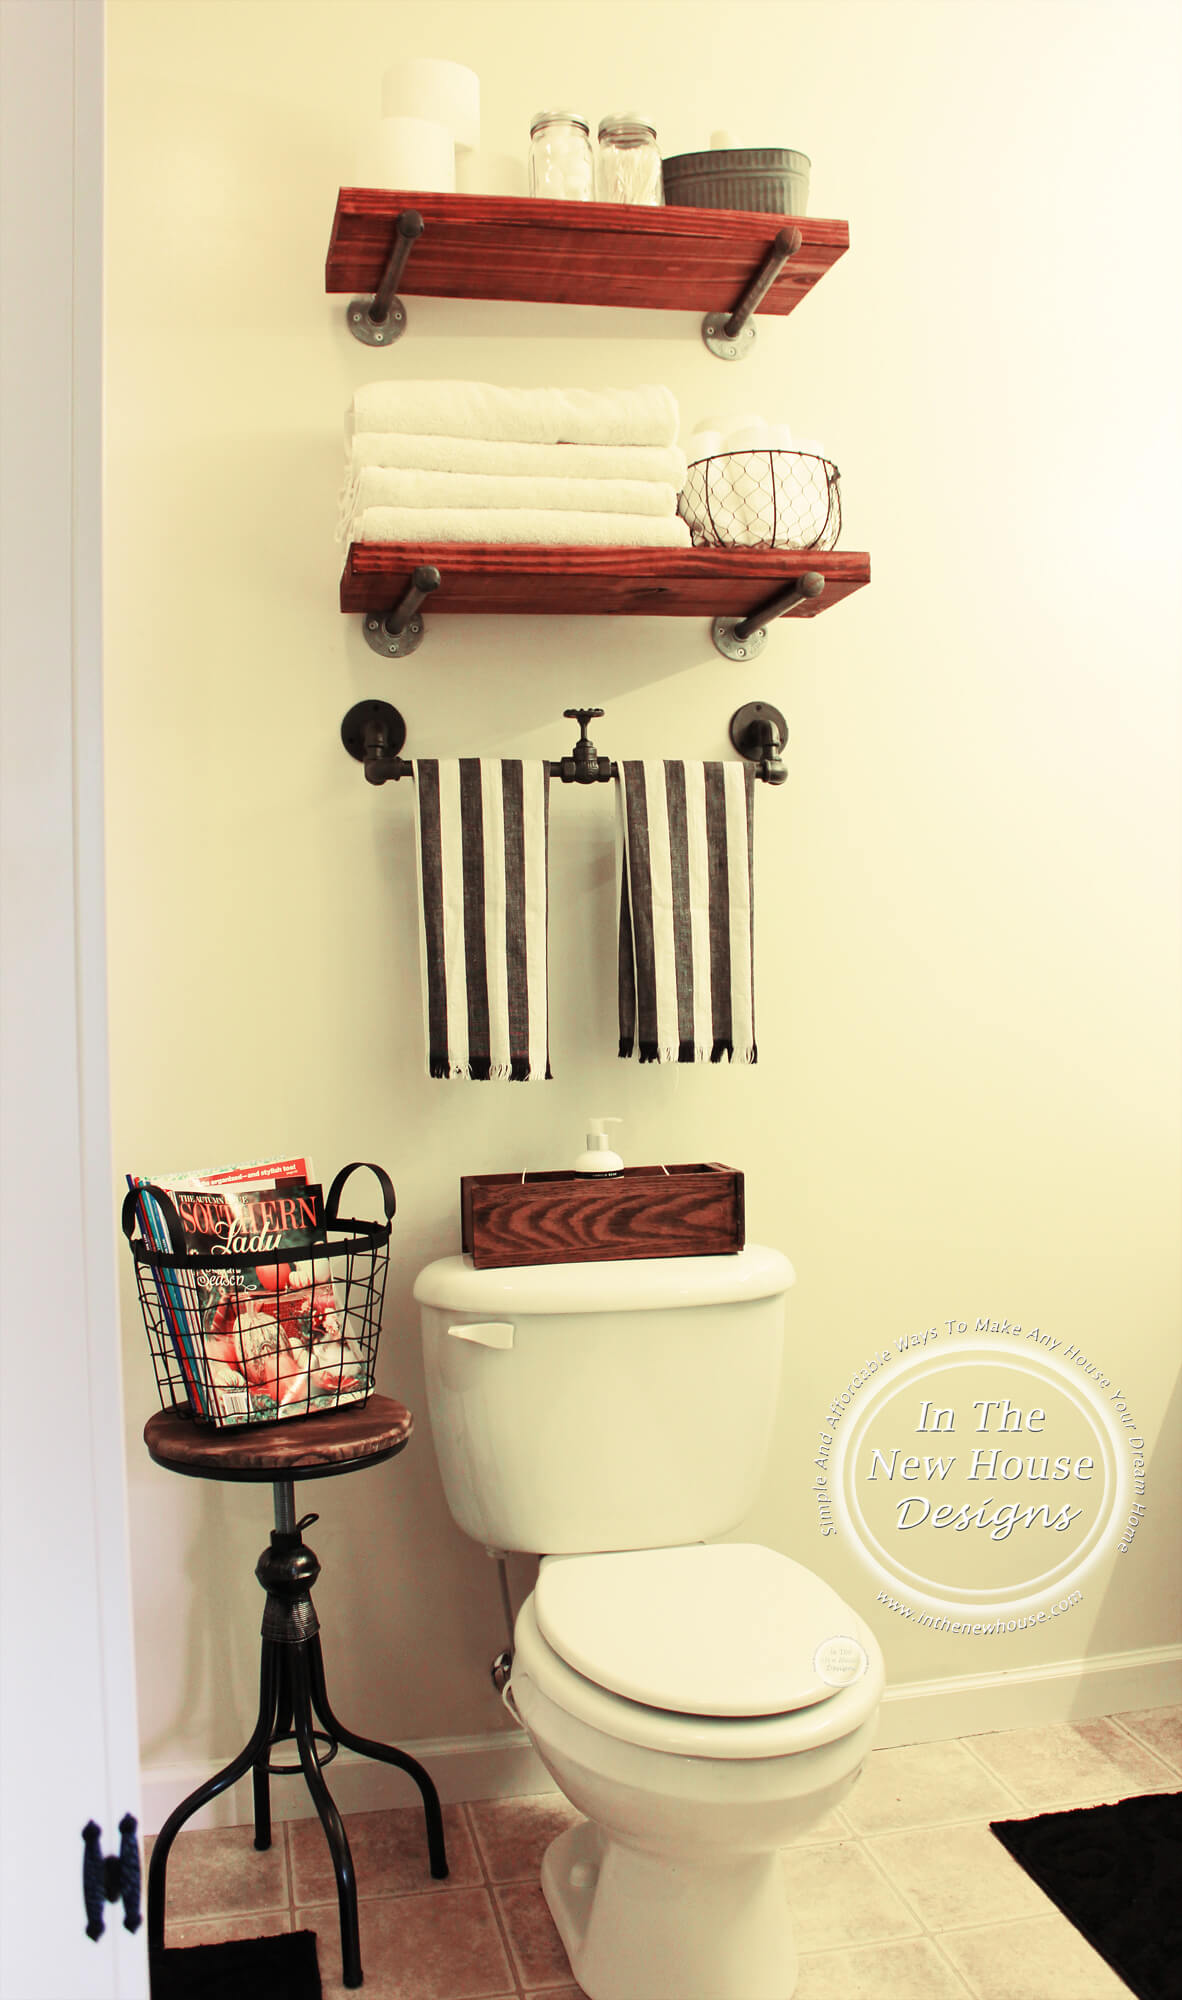 Modern Industrial Pipe Bathroom Shelf and Rack